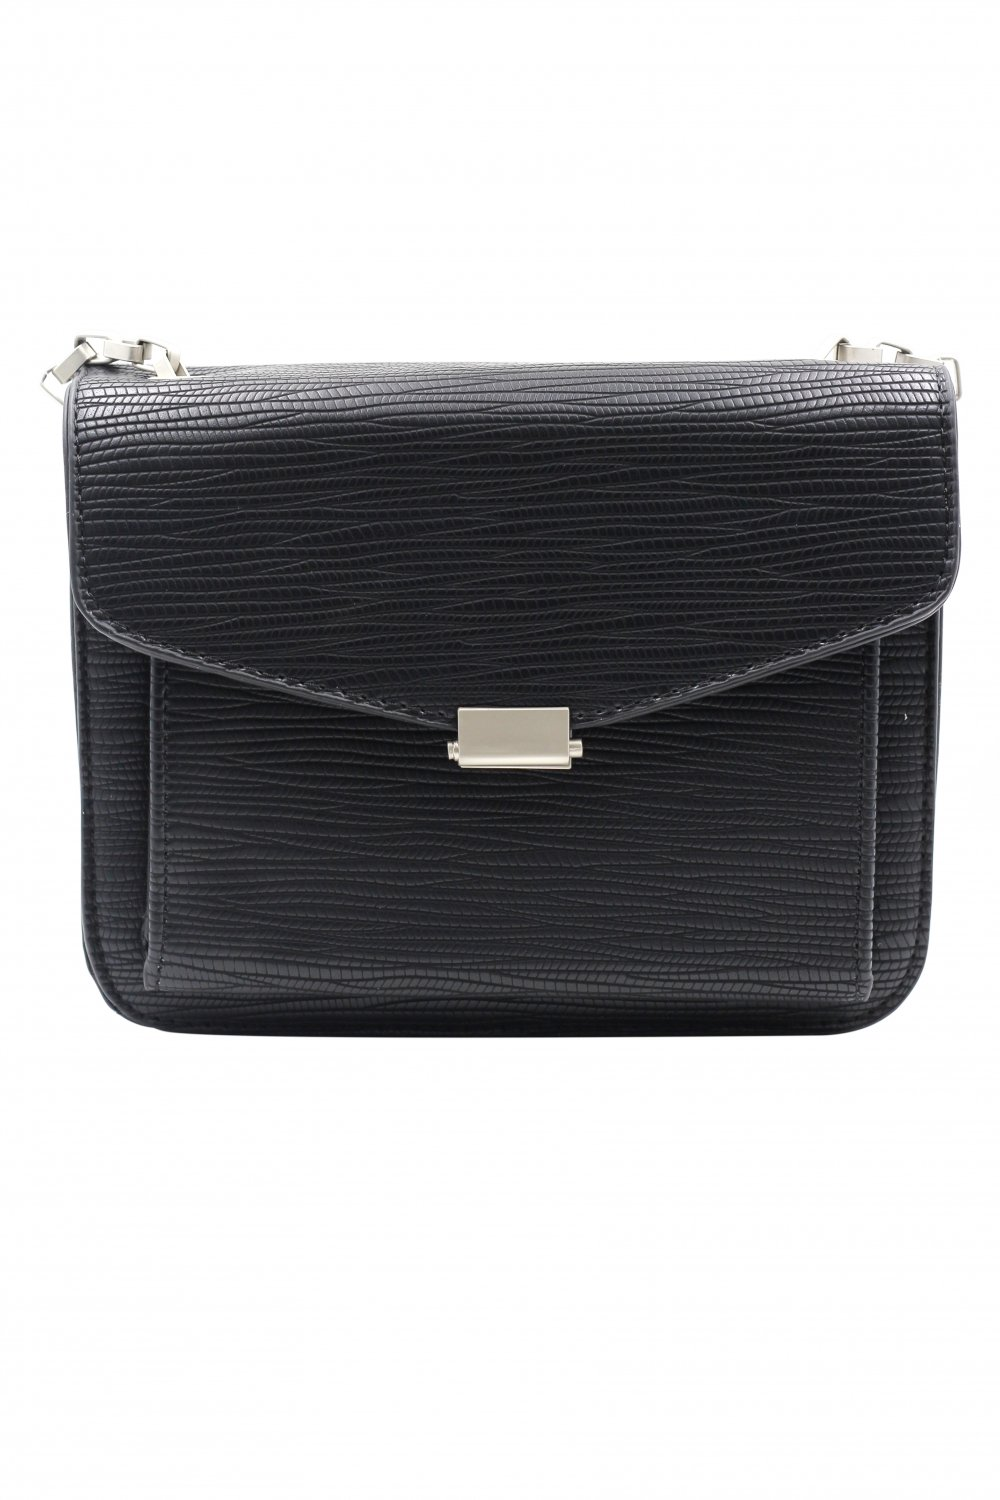 Small buckle leather black purses